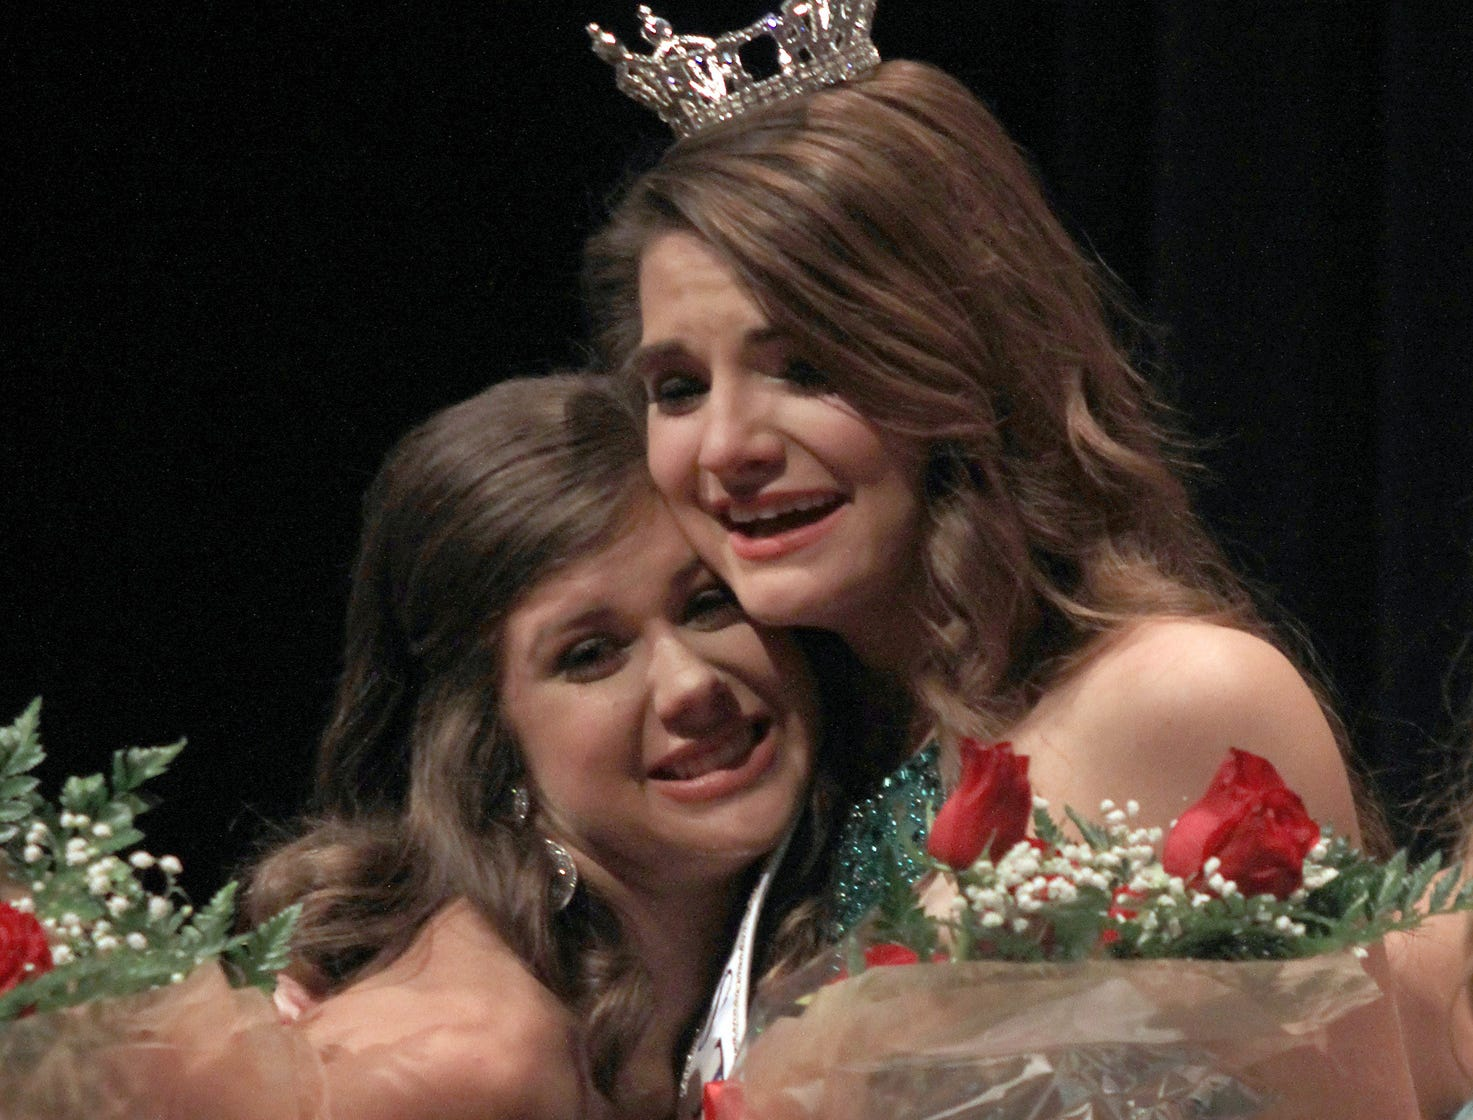 Kinsley Burchett gives a hug to the newly crowned Miss Tennessee's Outstanding Teen 2019 Taylor Parsons in Gallatin, TN on Saturday, March 30, 2019.